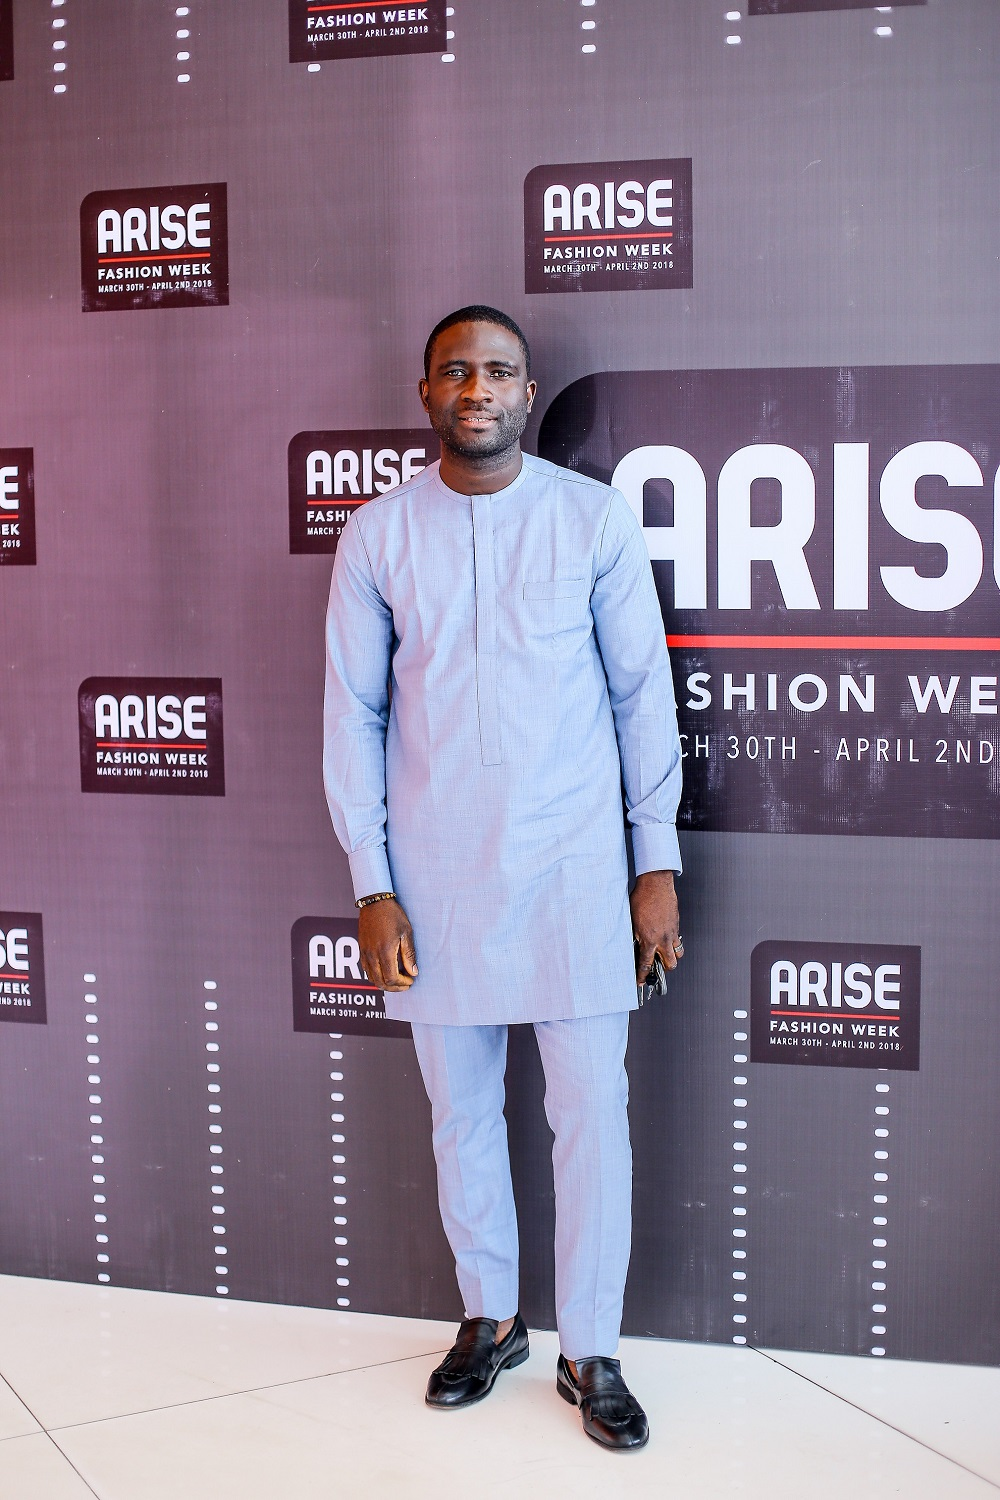 Arise gallery magazine party advise dress in spring in 2019